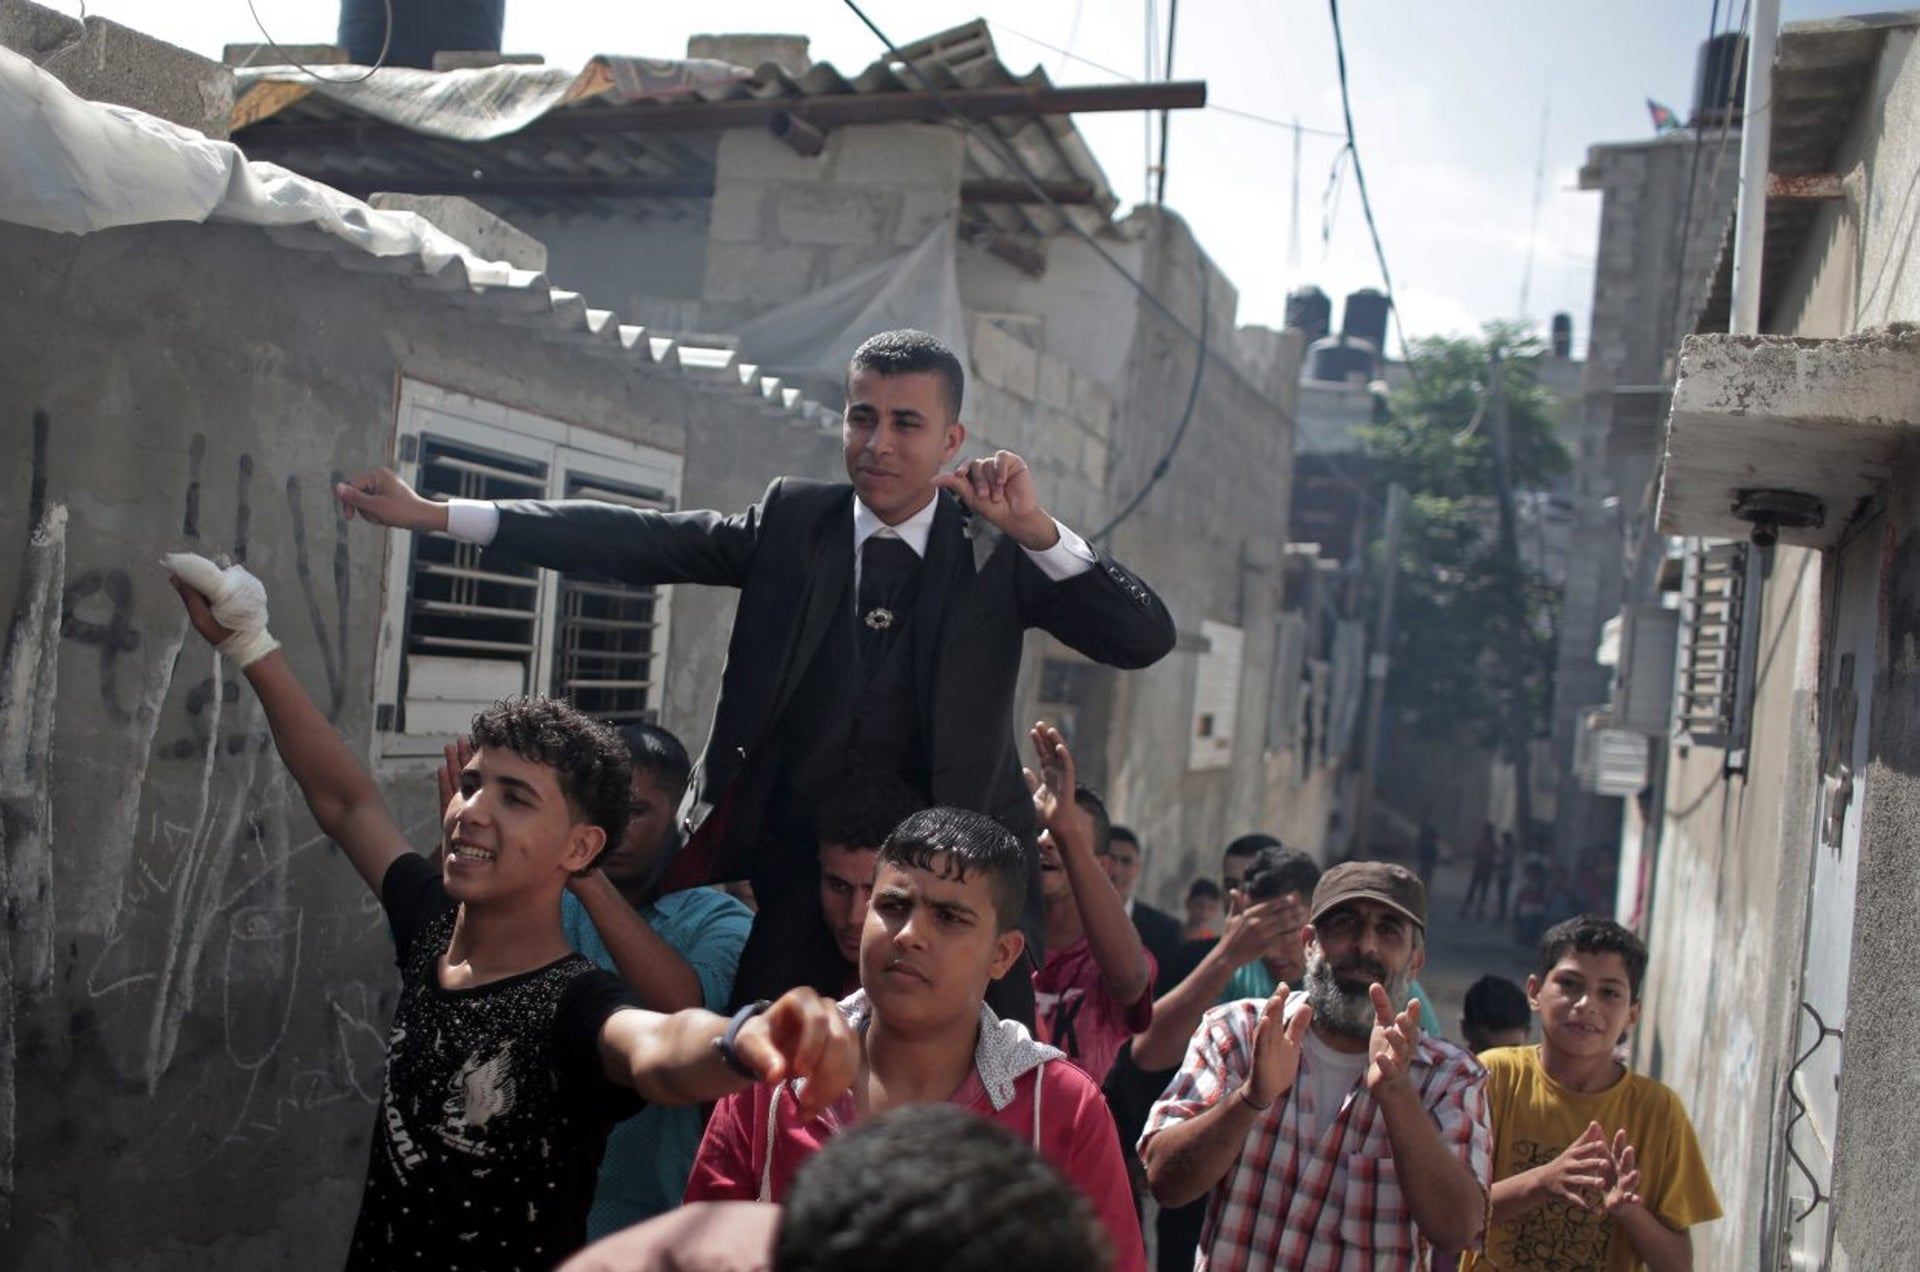 In this Saturday, July 30, 2016 photo, friends and relatives of Palestinian groom Saed Abu Aser dance in the streets around the neighborhood before his wedding in Gaza City.